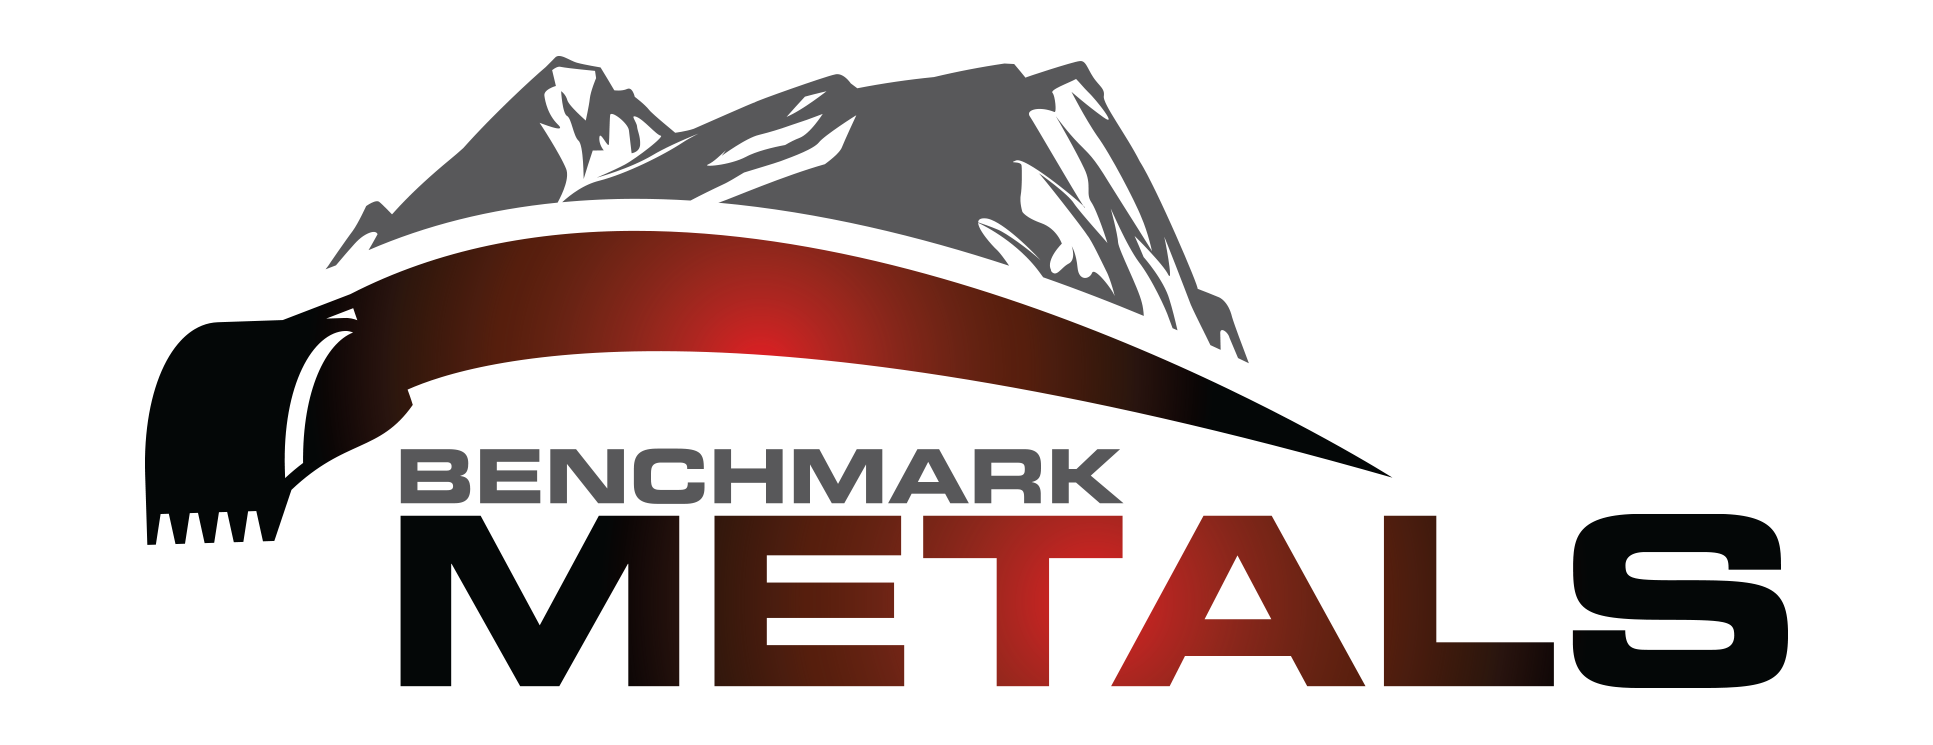 benchmark_logo_final.png